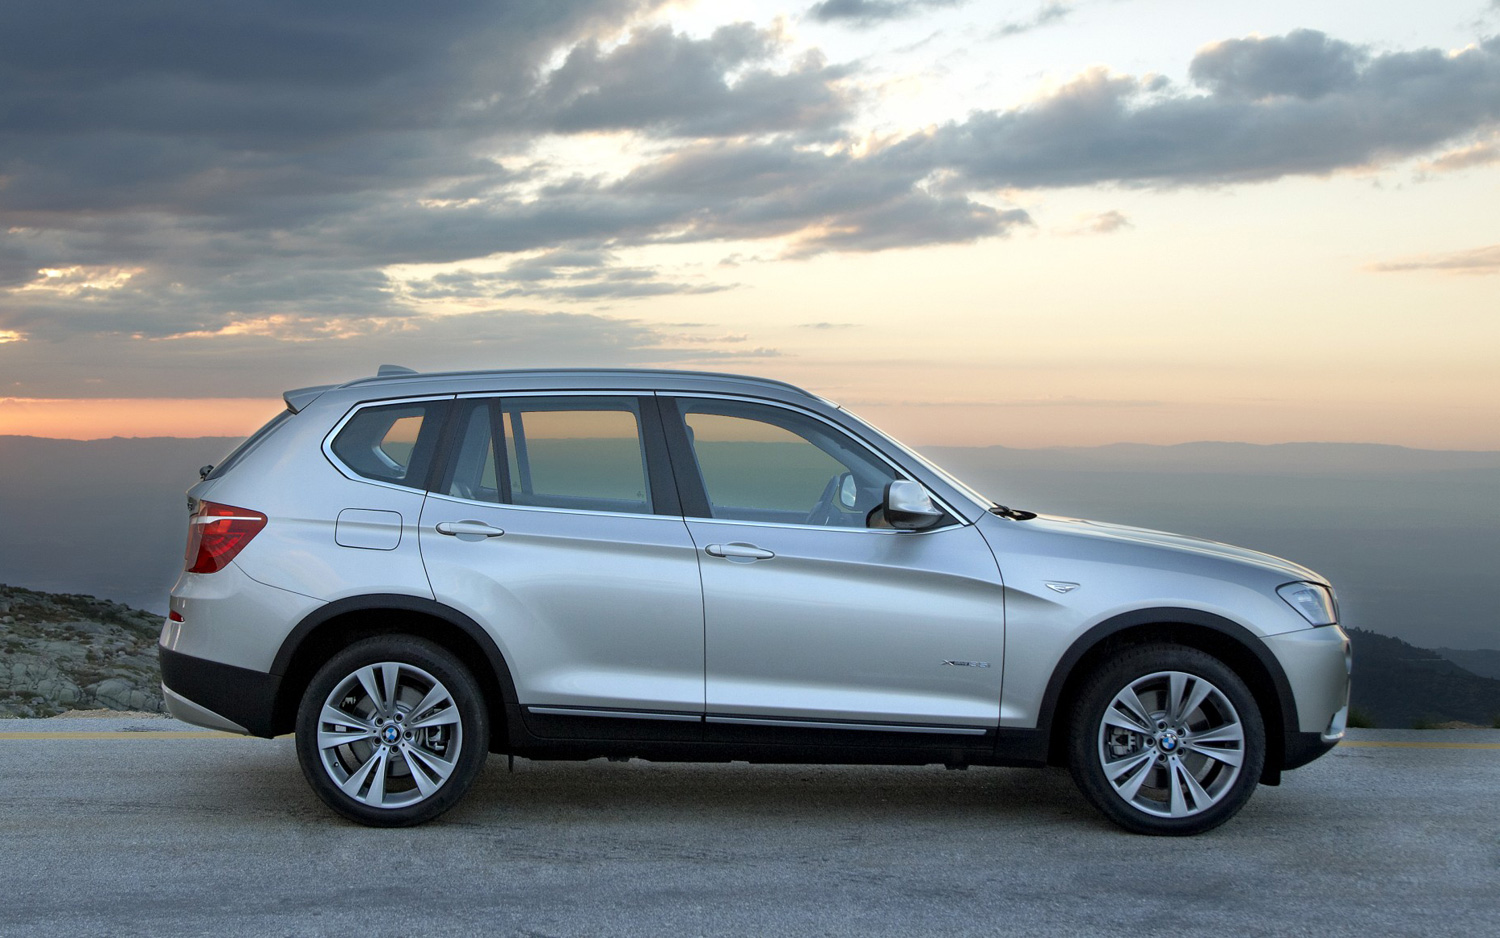 BMW X3 sDrive20i 2012 photo - 12